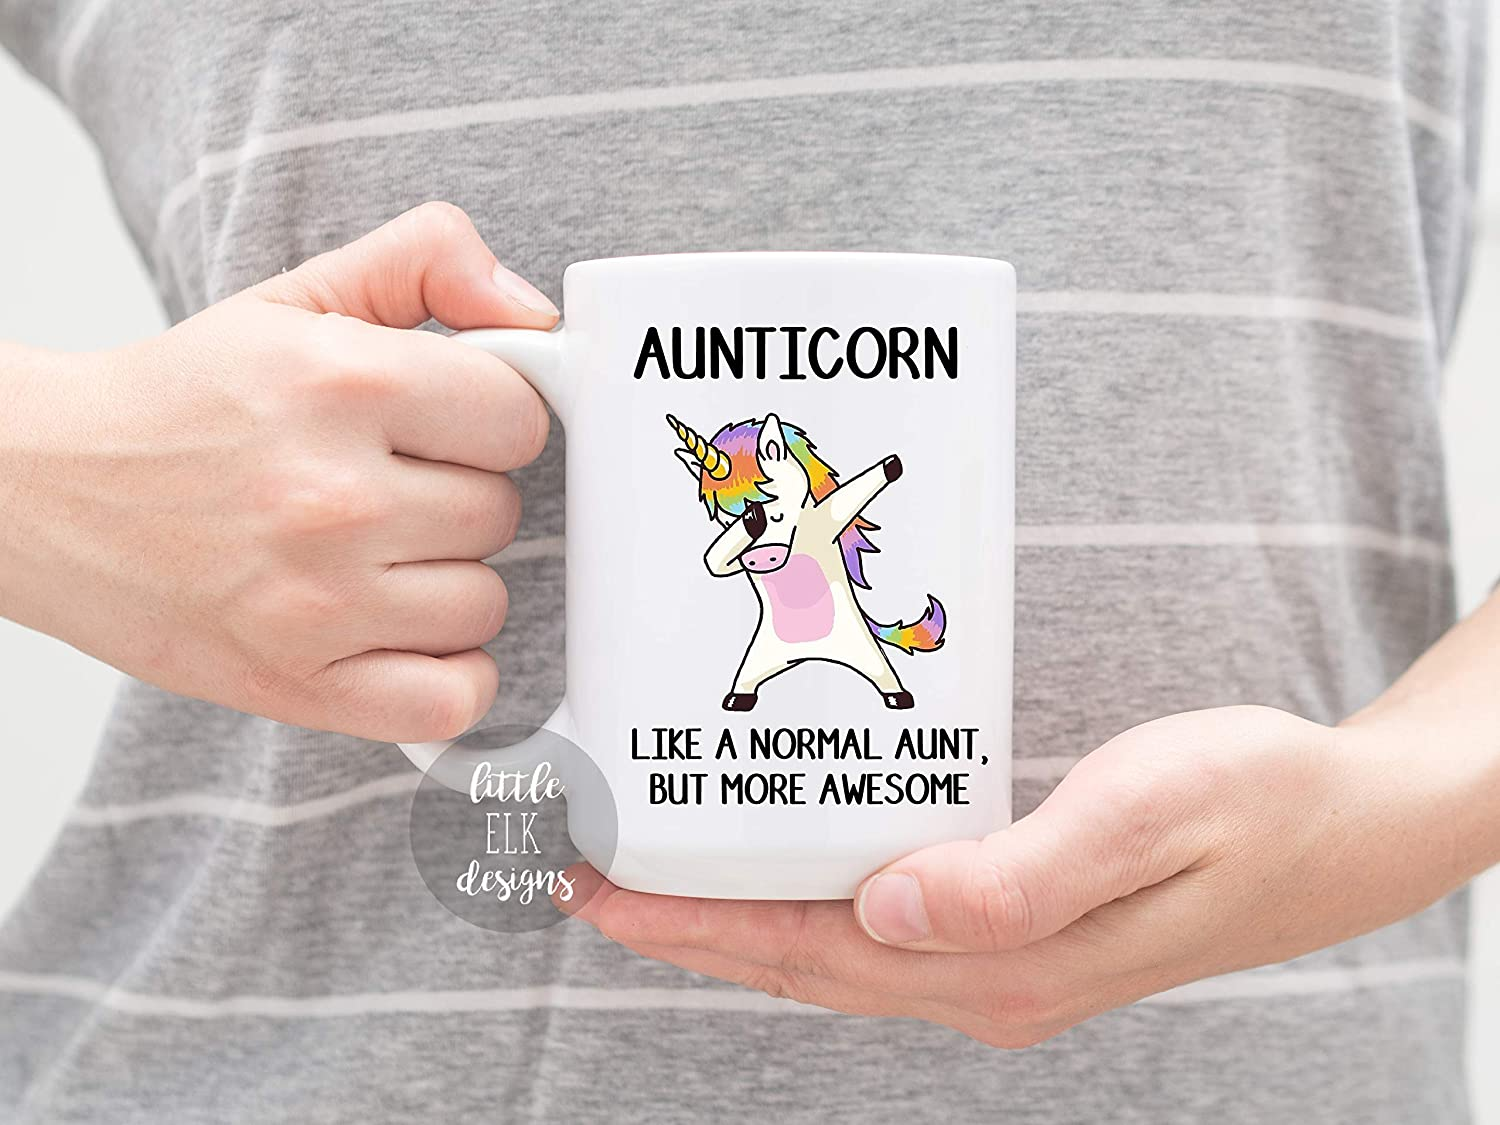 Unicorn Gift For Sister Ceramic Coffee Mug Large 15 oz White Cup Aunticorn Like A Normal Aunt Only Cooler